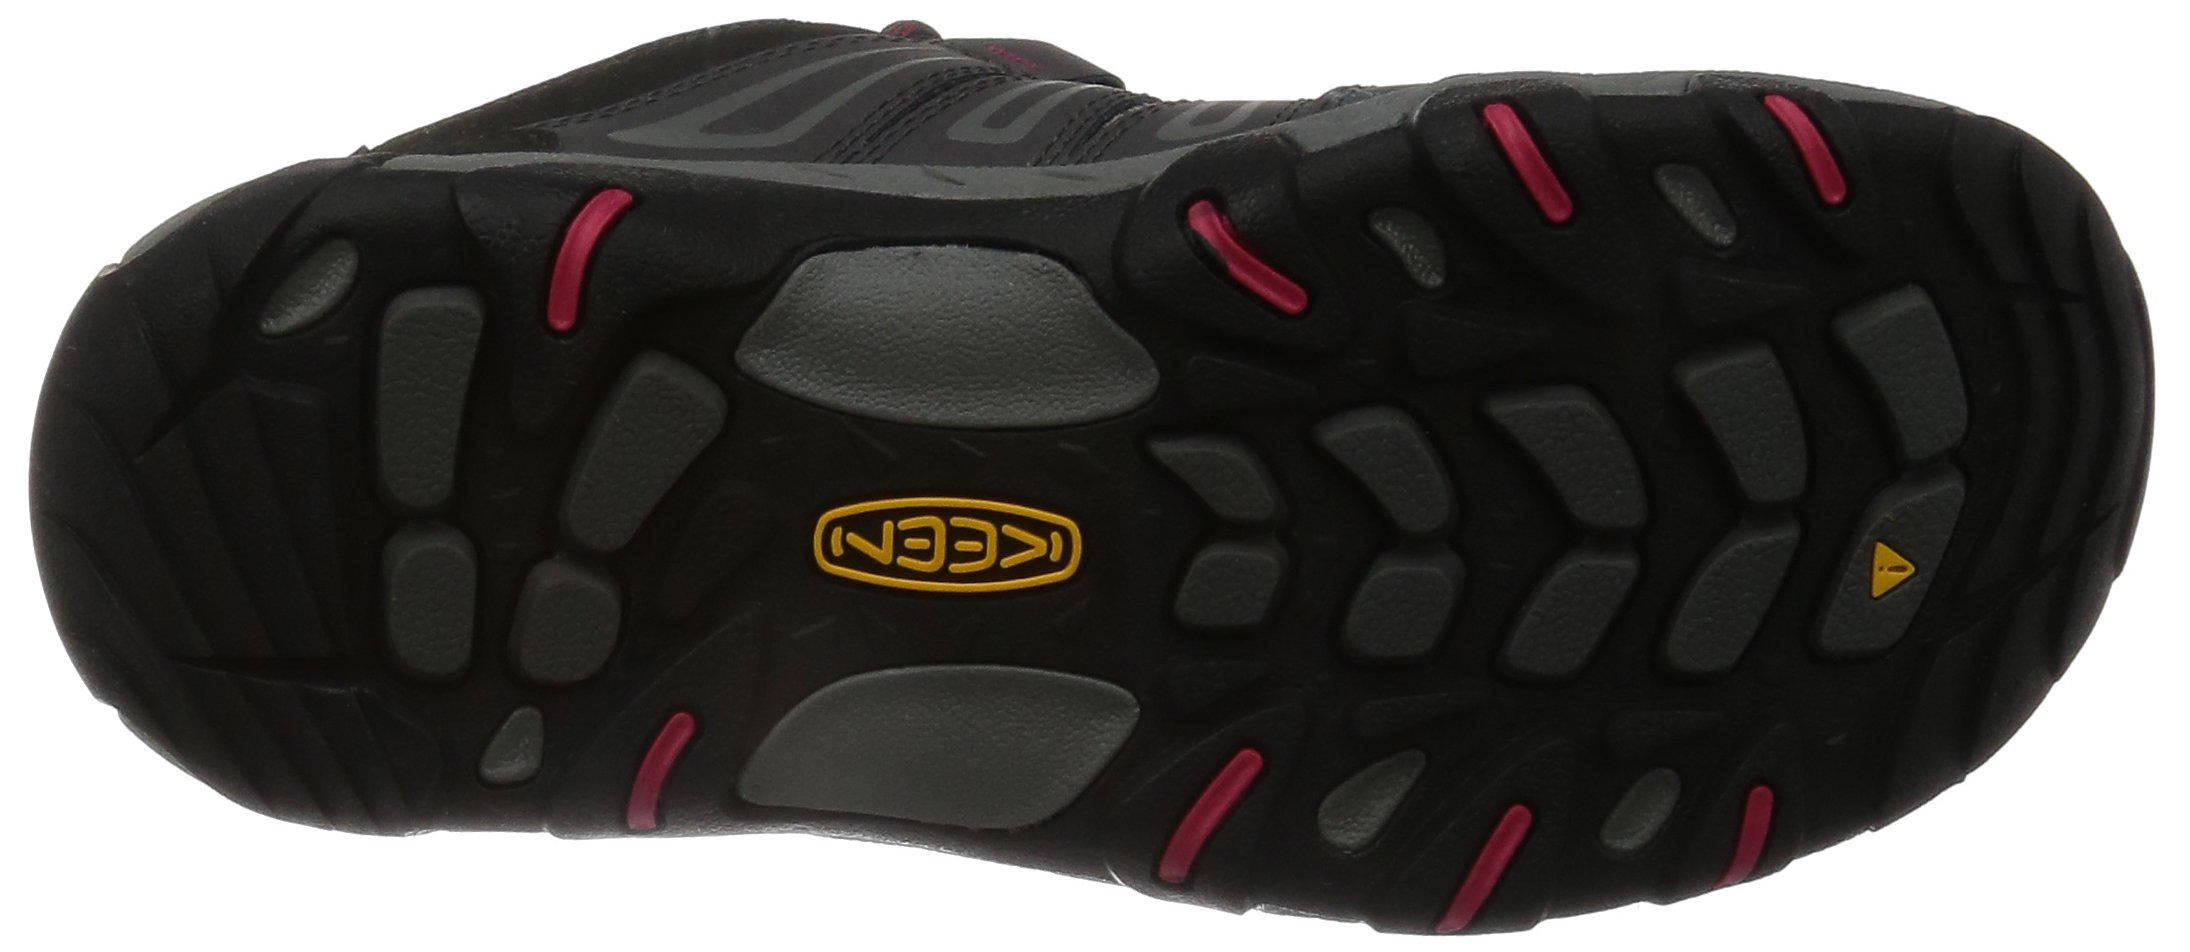 KEEN Women's Oakridge Waterproof Shoe, Magnet/Rose, 9 M US by KEEN (Image #3)